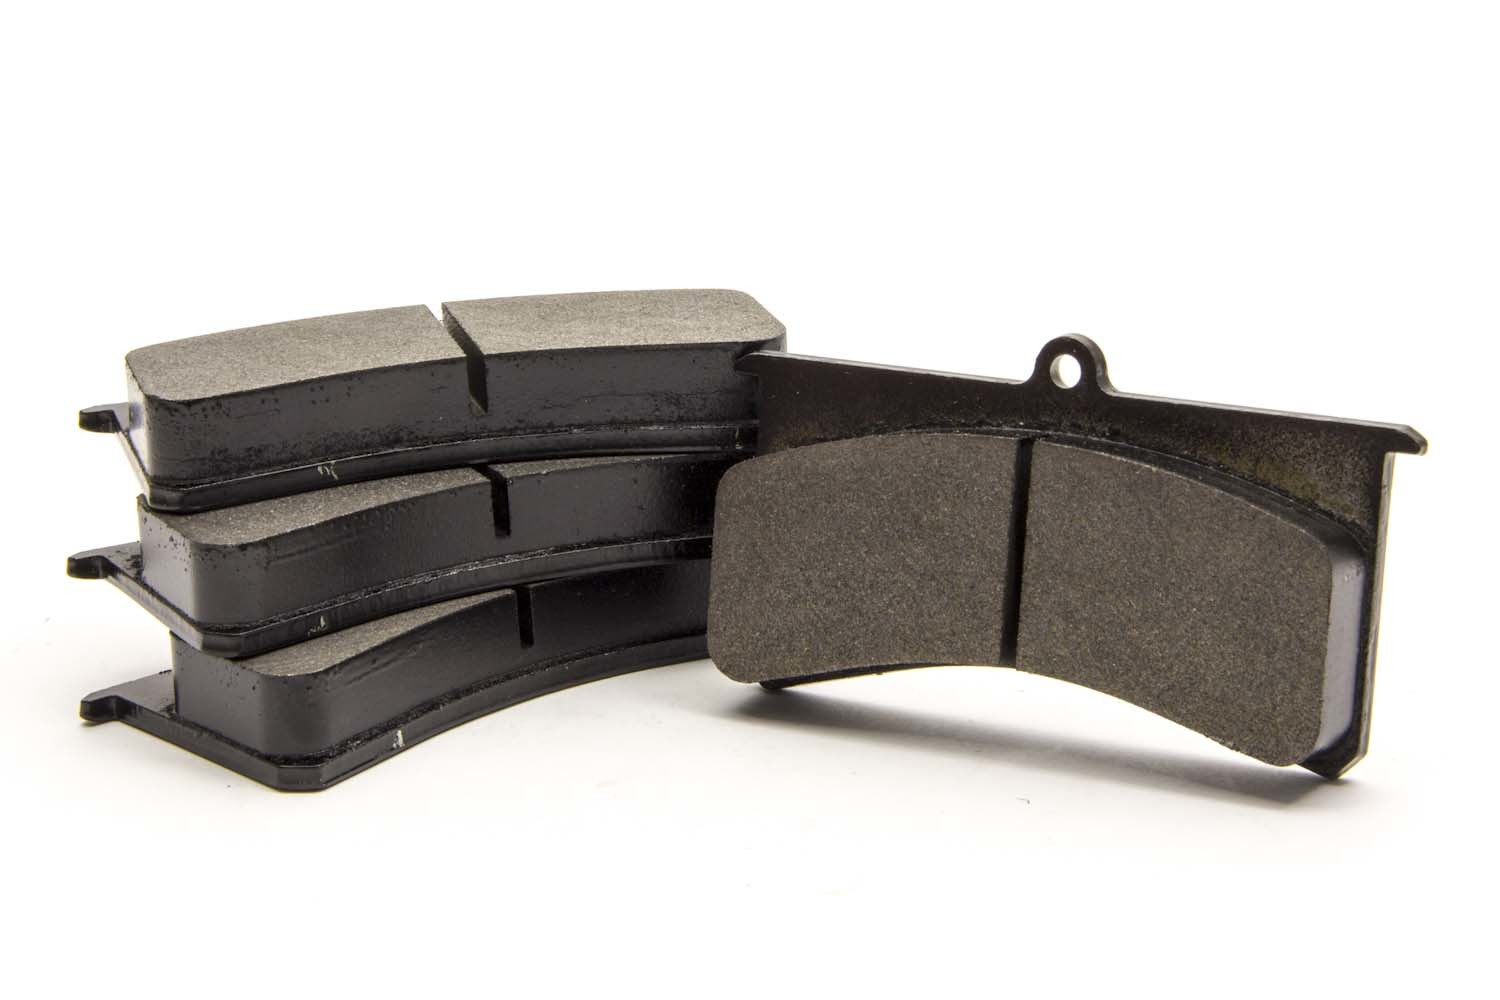 Afco Racing Products Brake Pads C2 for F88 Caliper